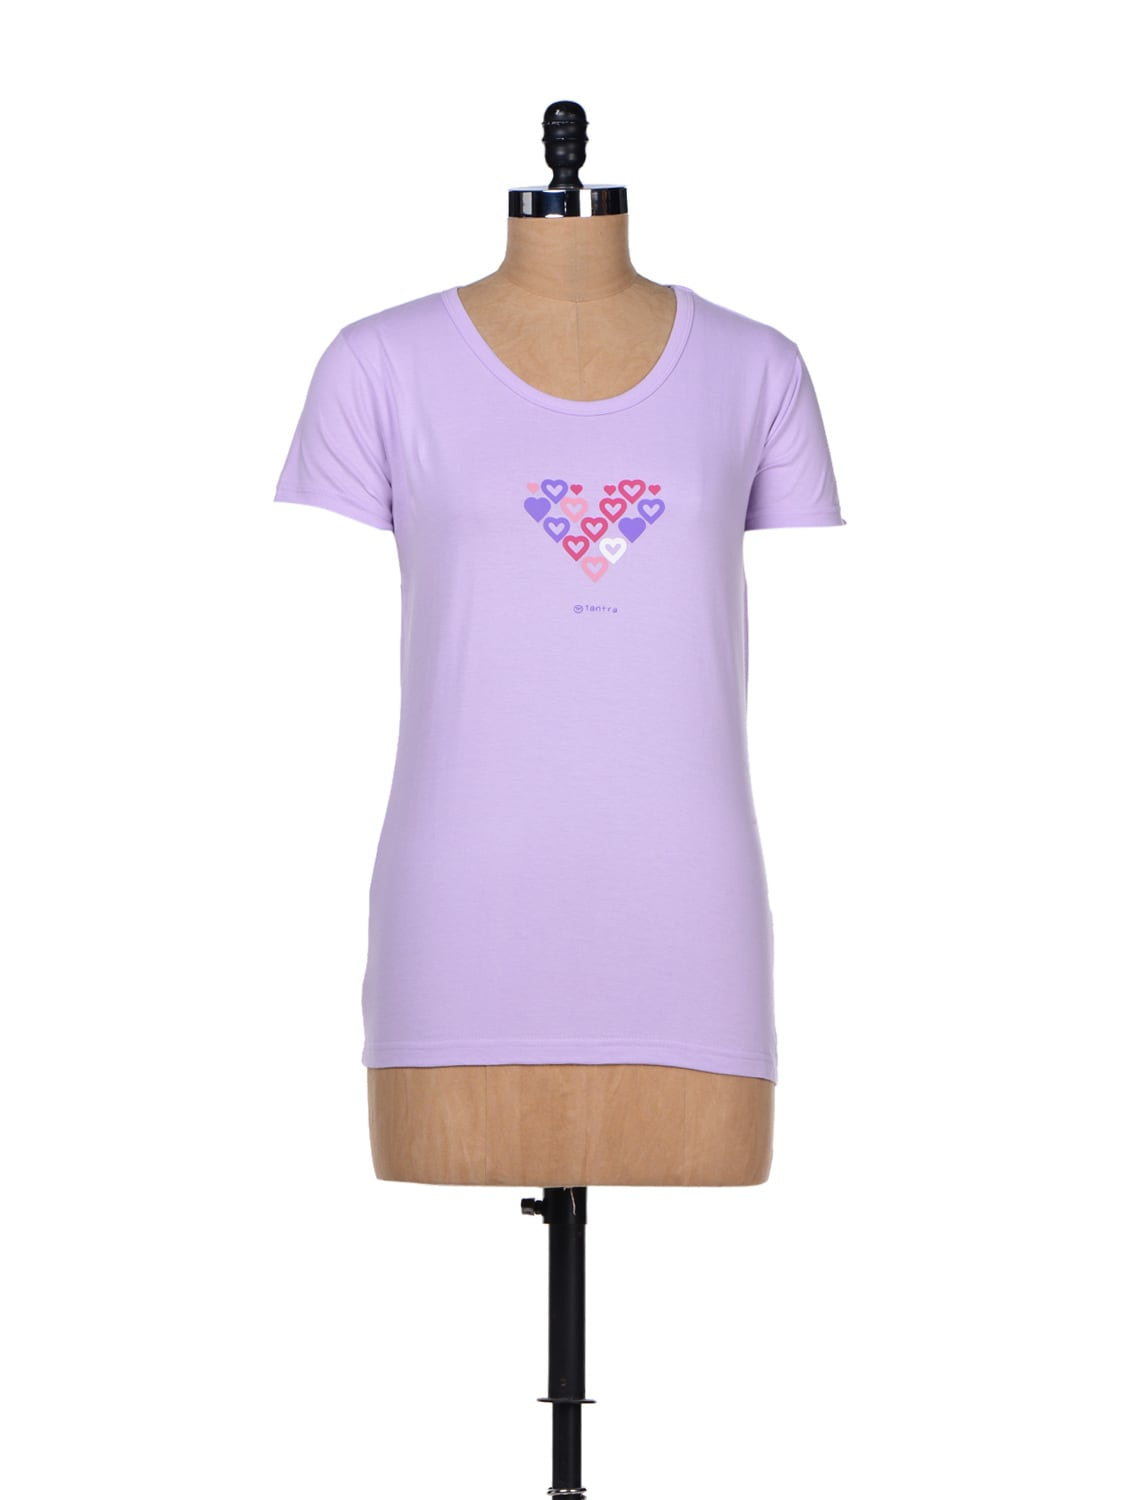 Hearts Print- Cotton T-shirt - TANTRA